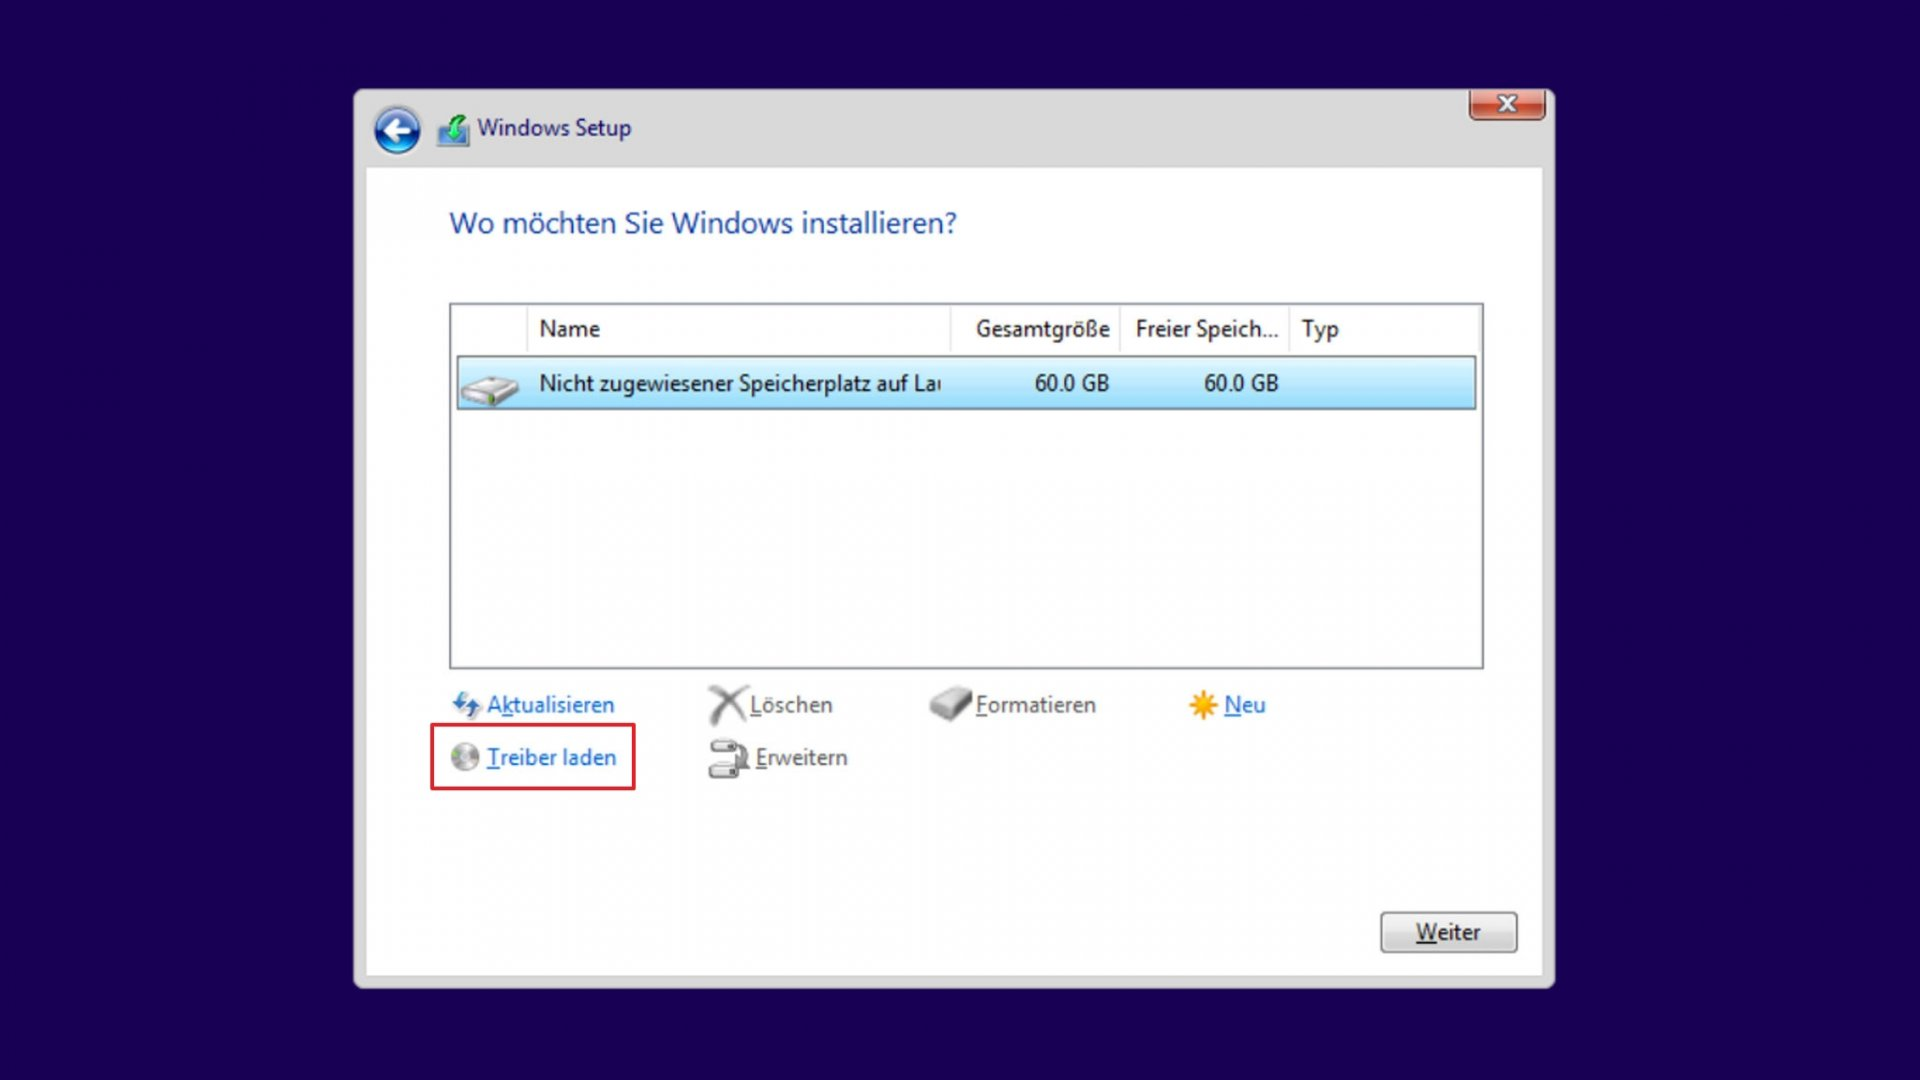 Windows-10-installieren_Treiber-laden-USB-Stick.jpg